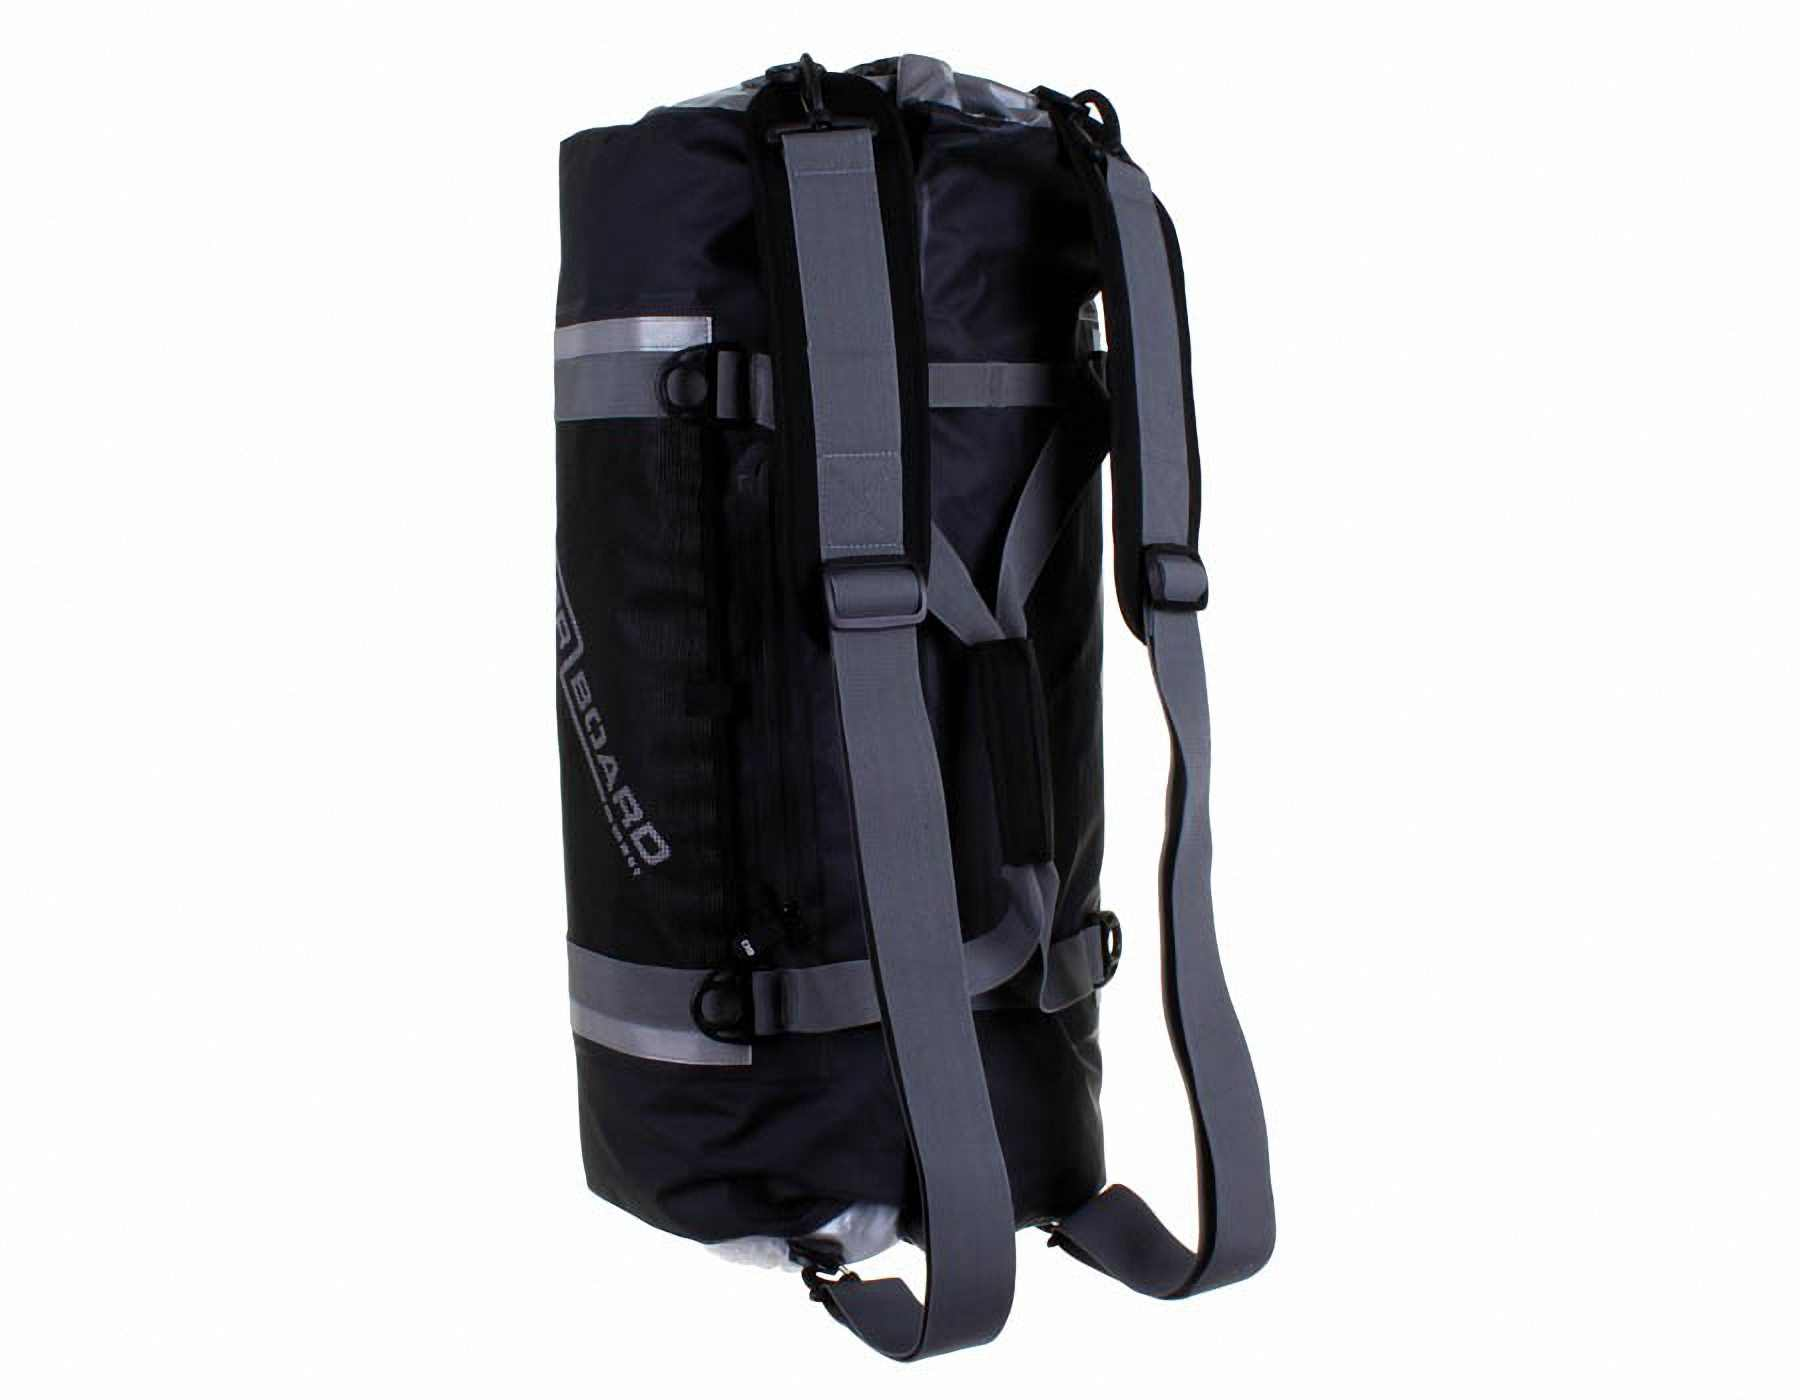 Водонепроницаемая сумка OverBoard OB1154BLK - Pro-Sports Waterproof Duffel Bag - 60 литров.  Фото 9